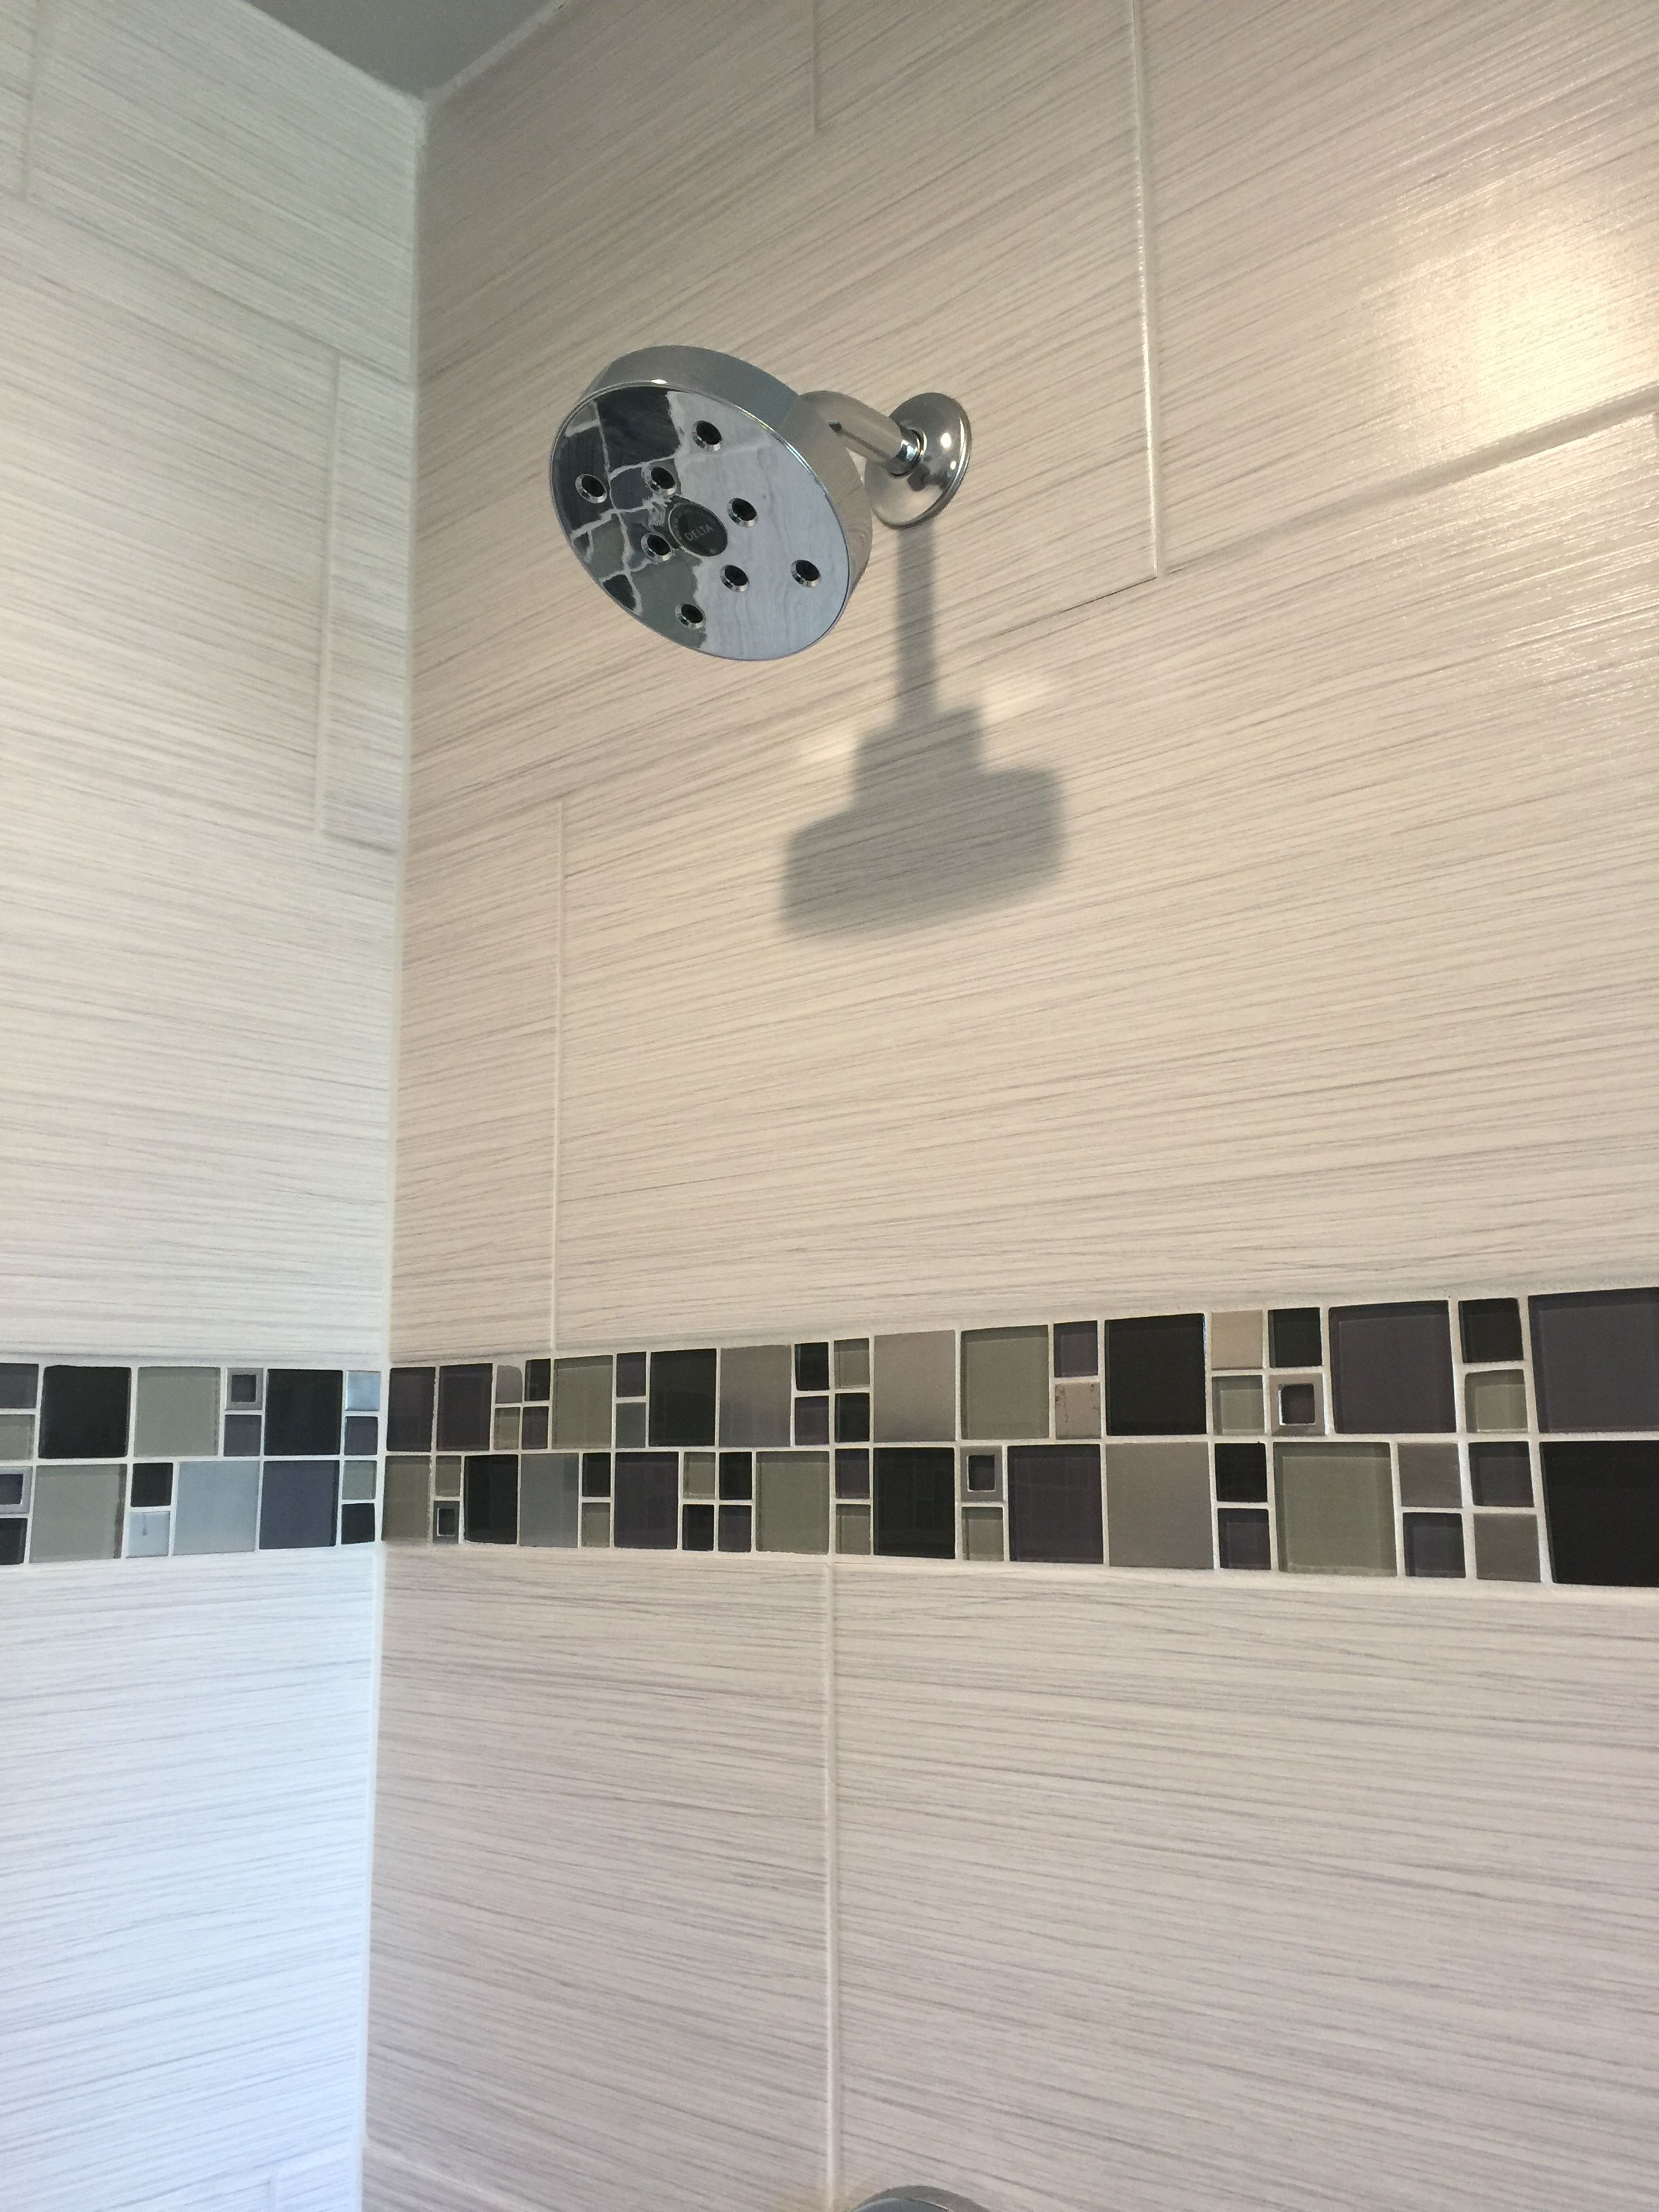 Custom Tiled Shower With 12x24 Satiated Tile Run 1 3 Staggered Vertically With A Glass And Metal Mosaic Accent Stri Custom Tile Shower Shower Tile Custom Tiles